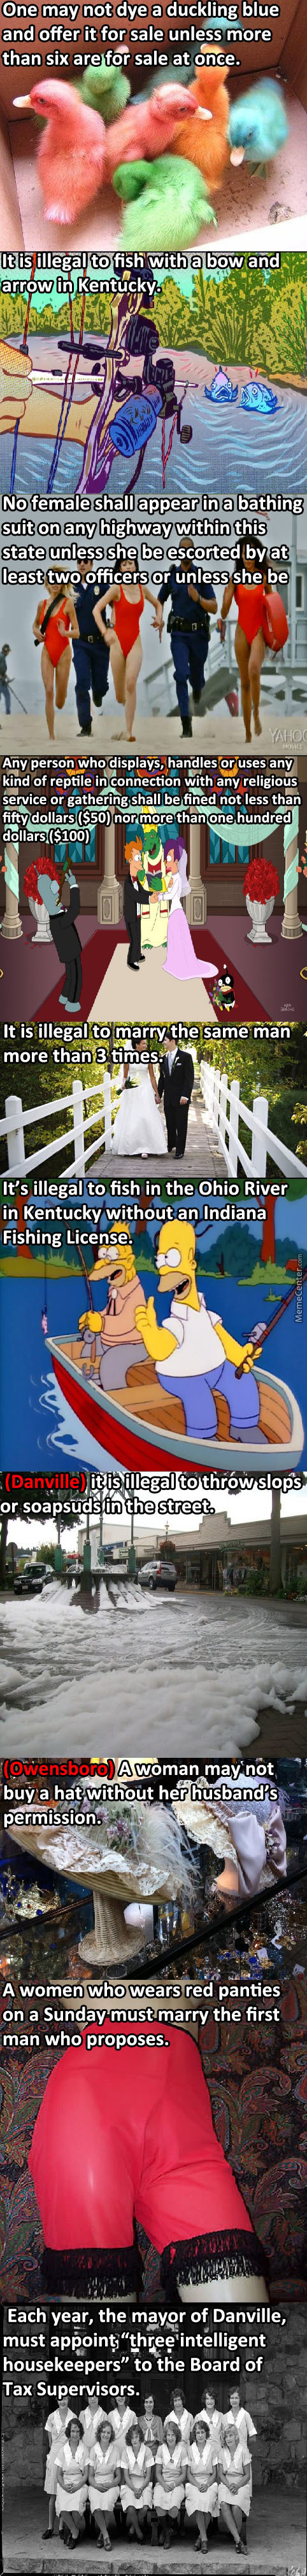 Silly Laws Kentucky